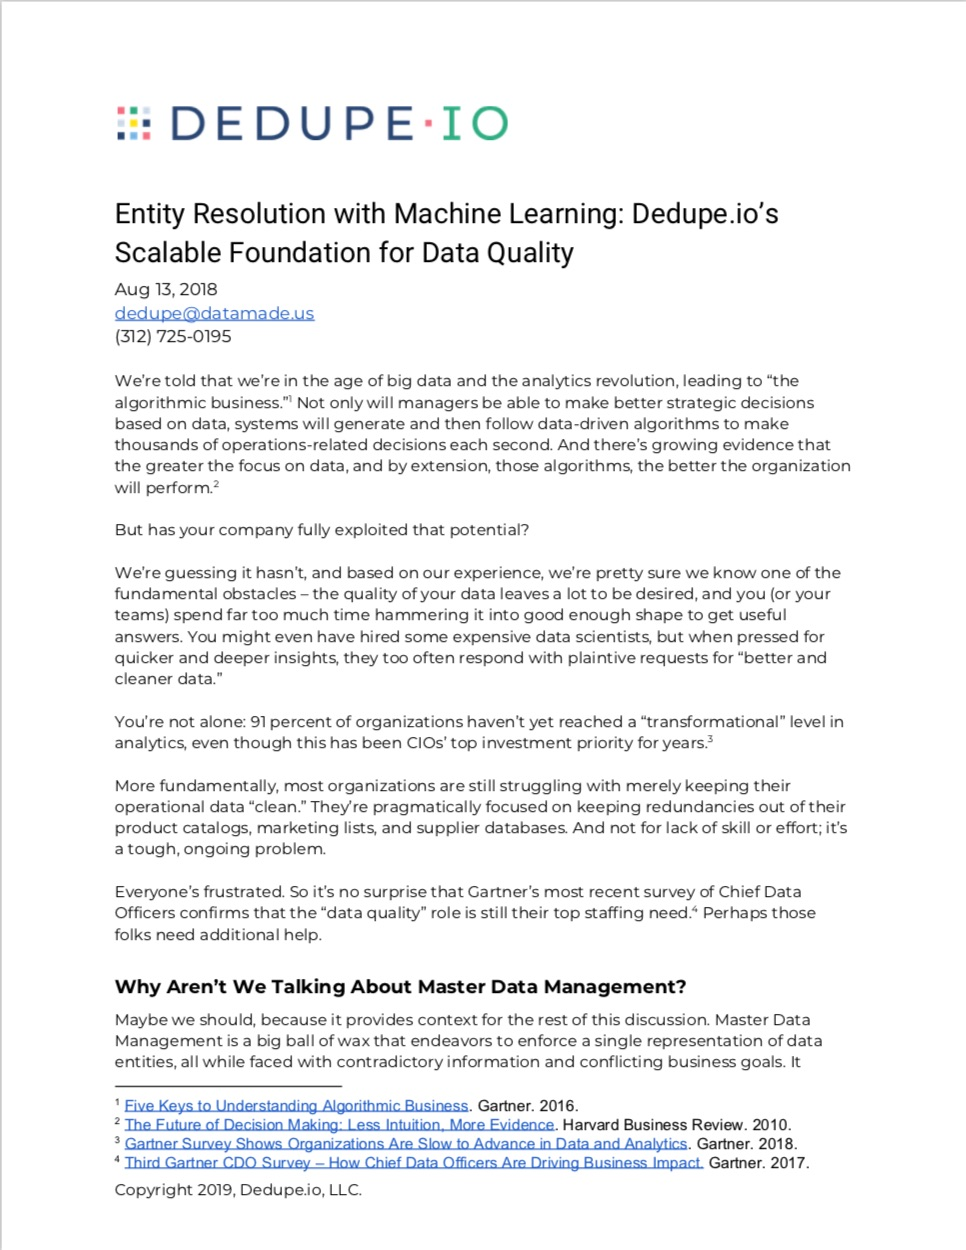 Entity Resolution with Machine Learning: Dedupe.io's Scalable Foundation for Data Quality